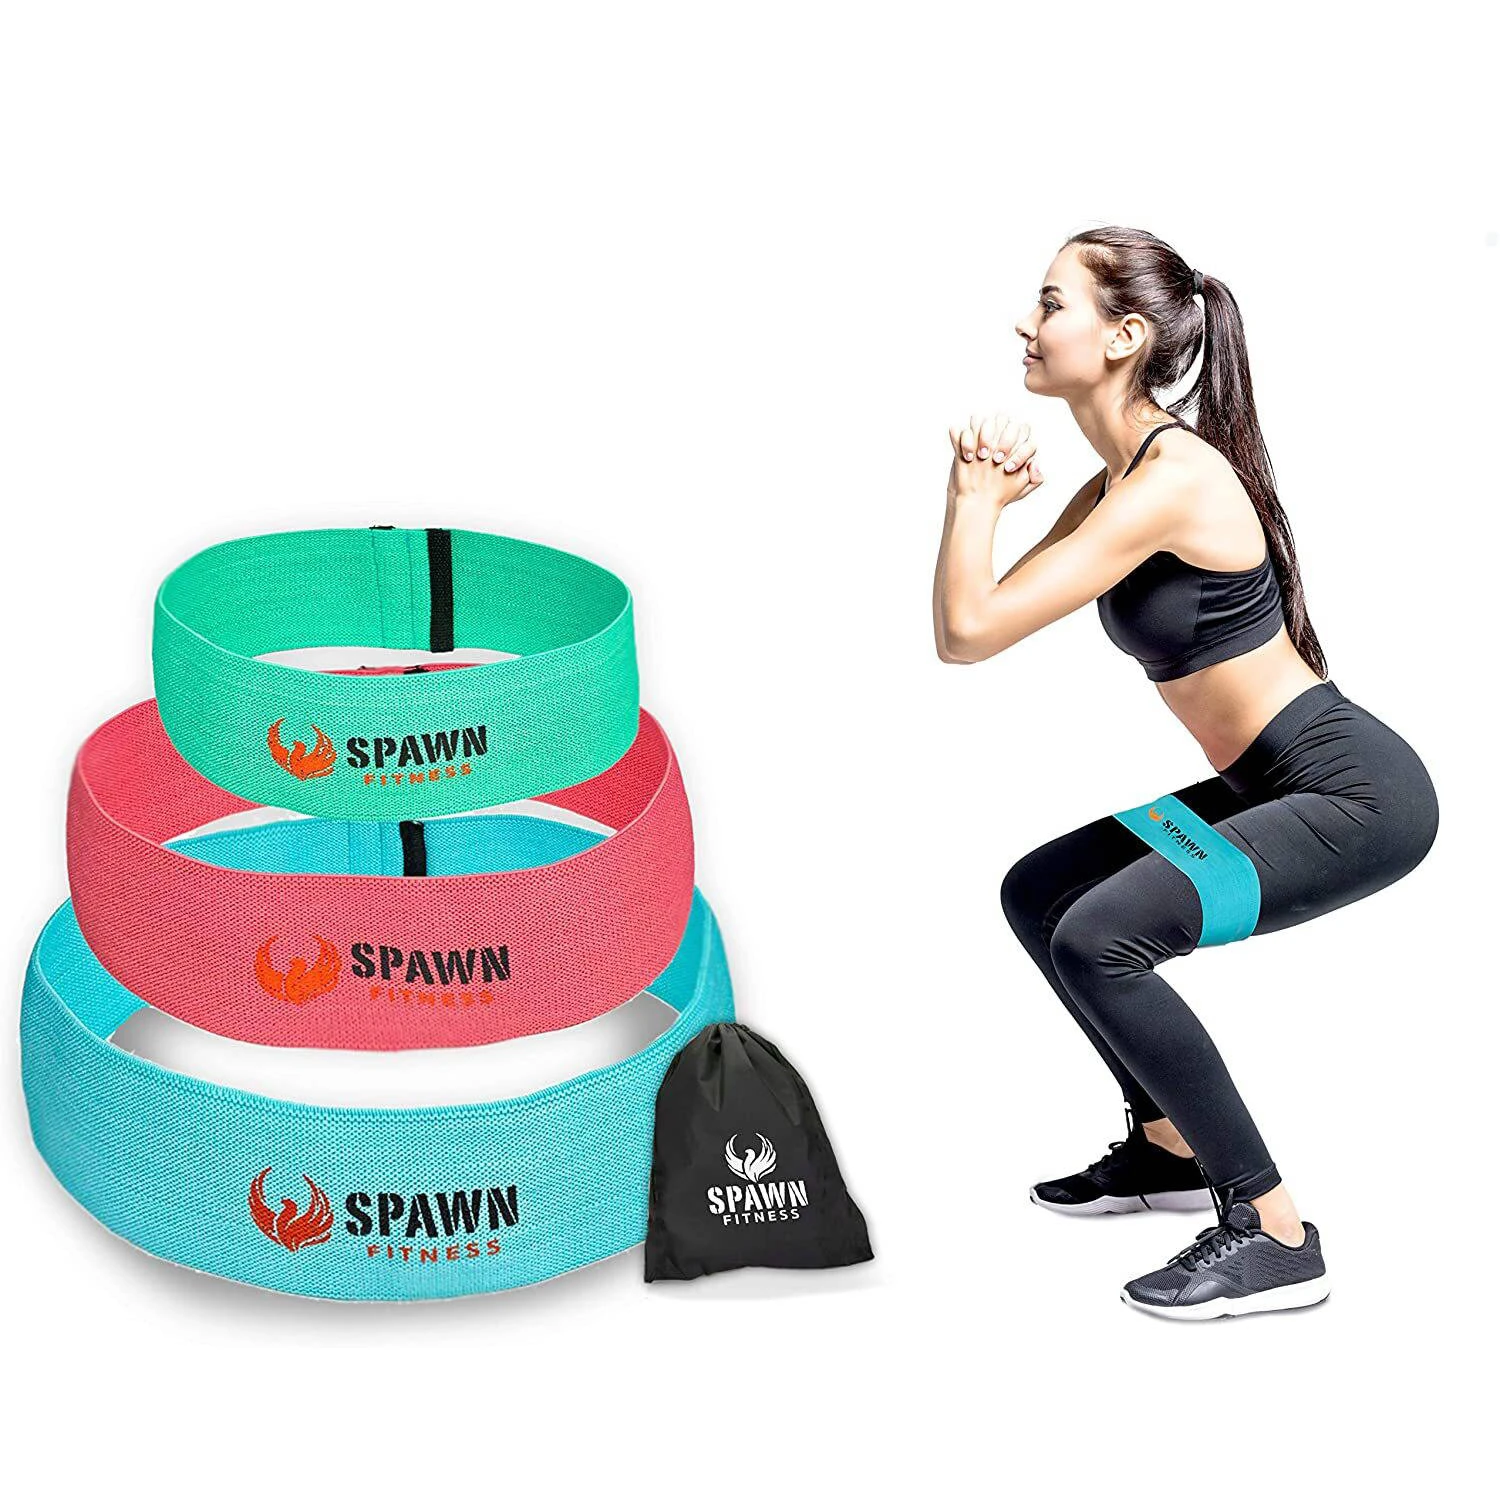 Spawn Fitness Resistance Bands are also fabric bands made of elasticized cottons for beginners and intermediates that comes in a set of 3